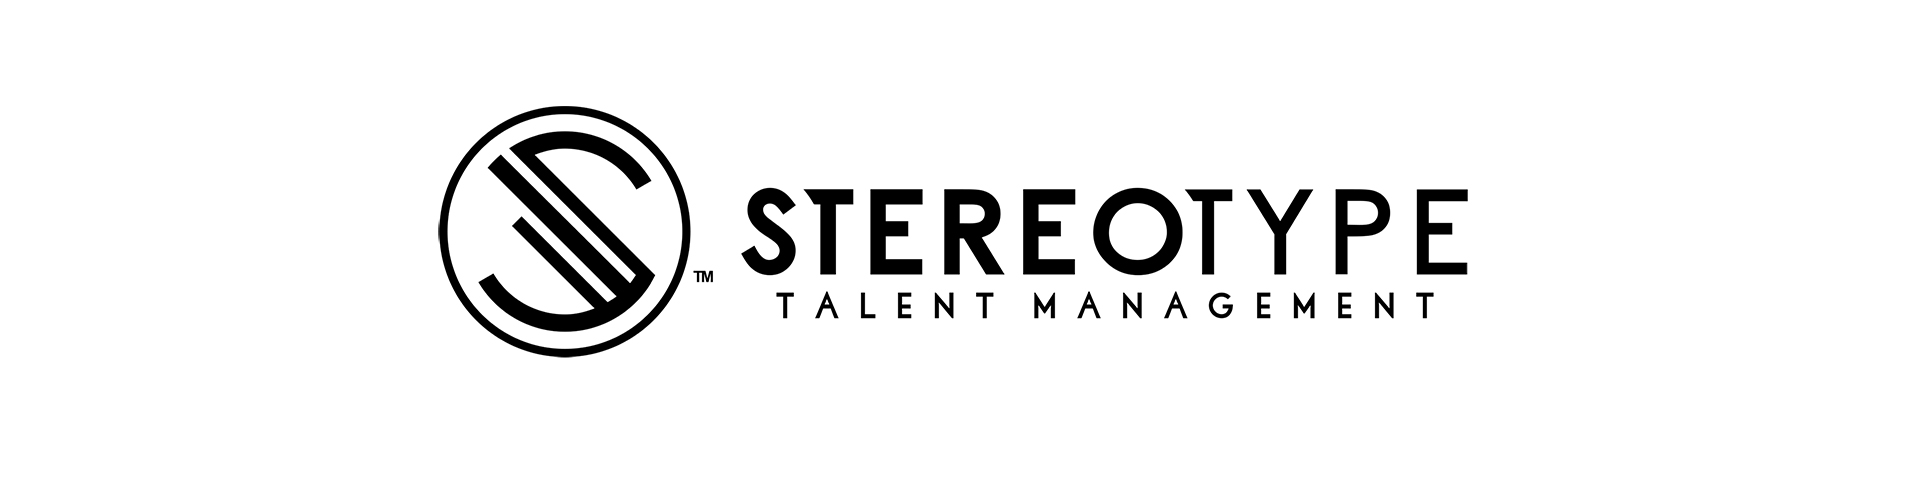 Stereotype Talent Management